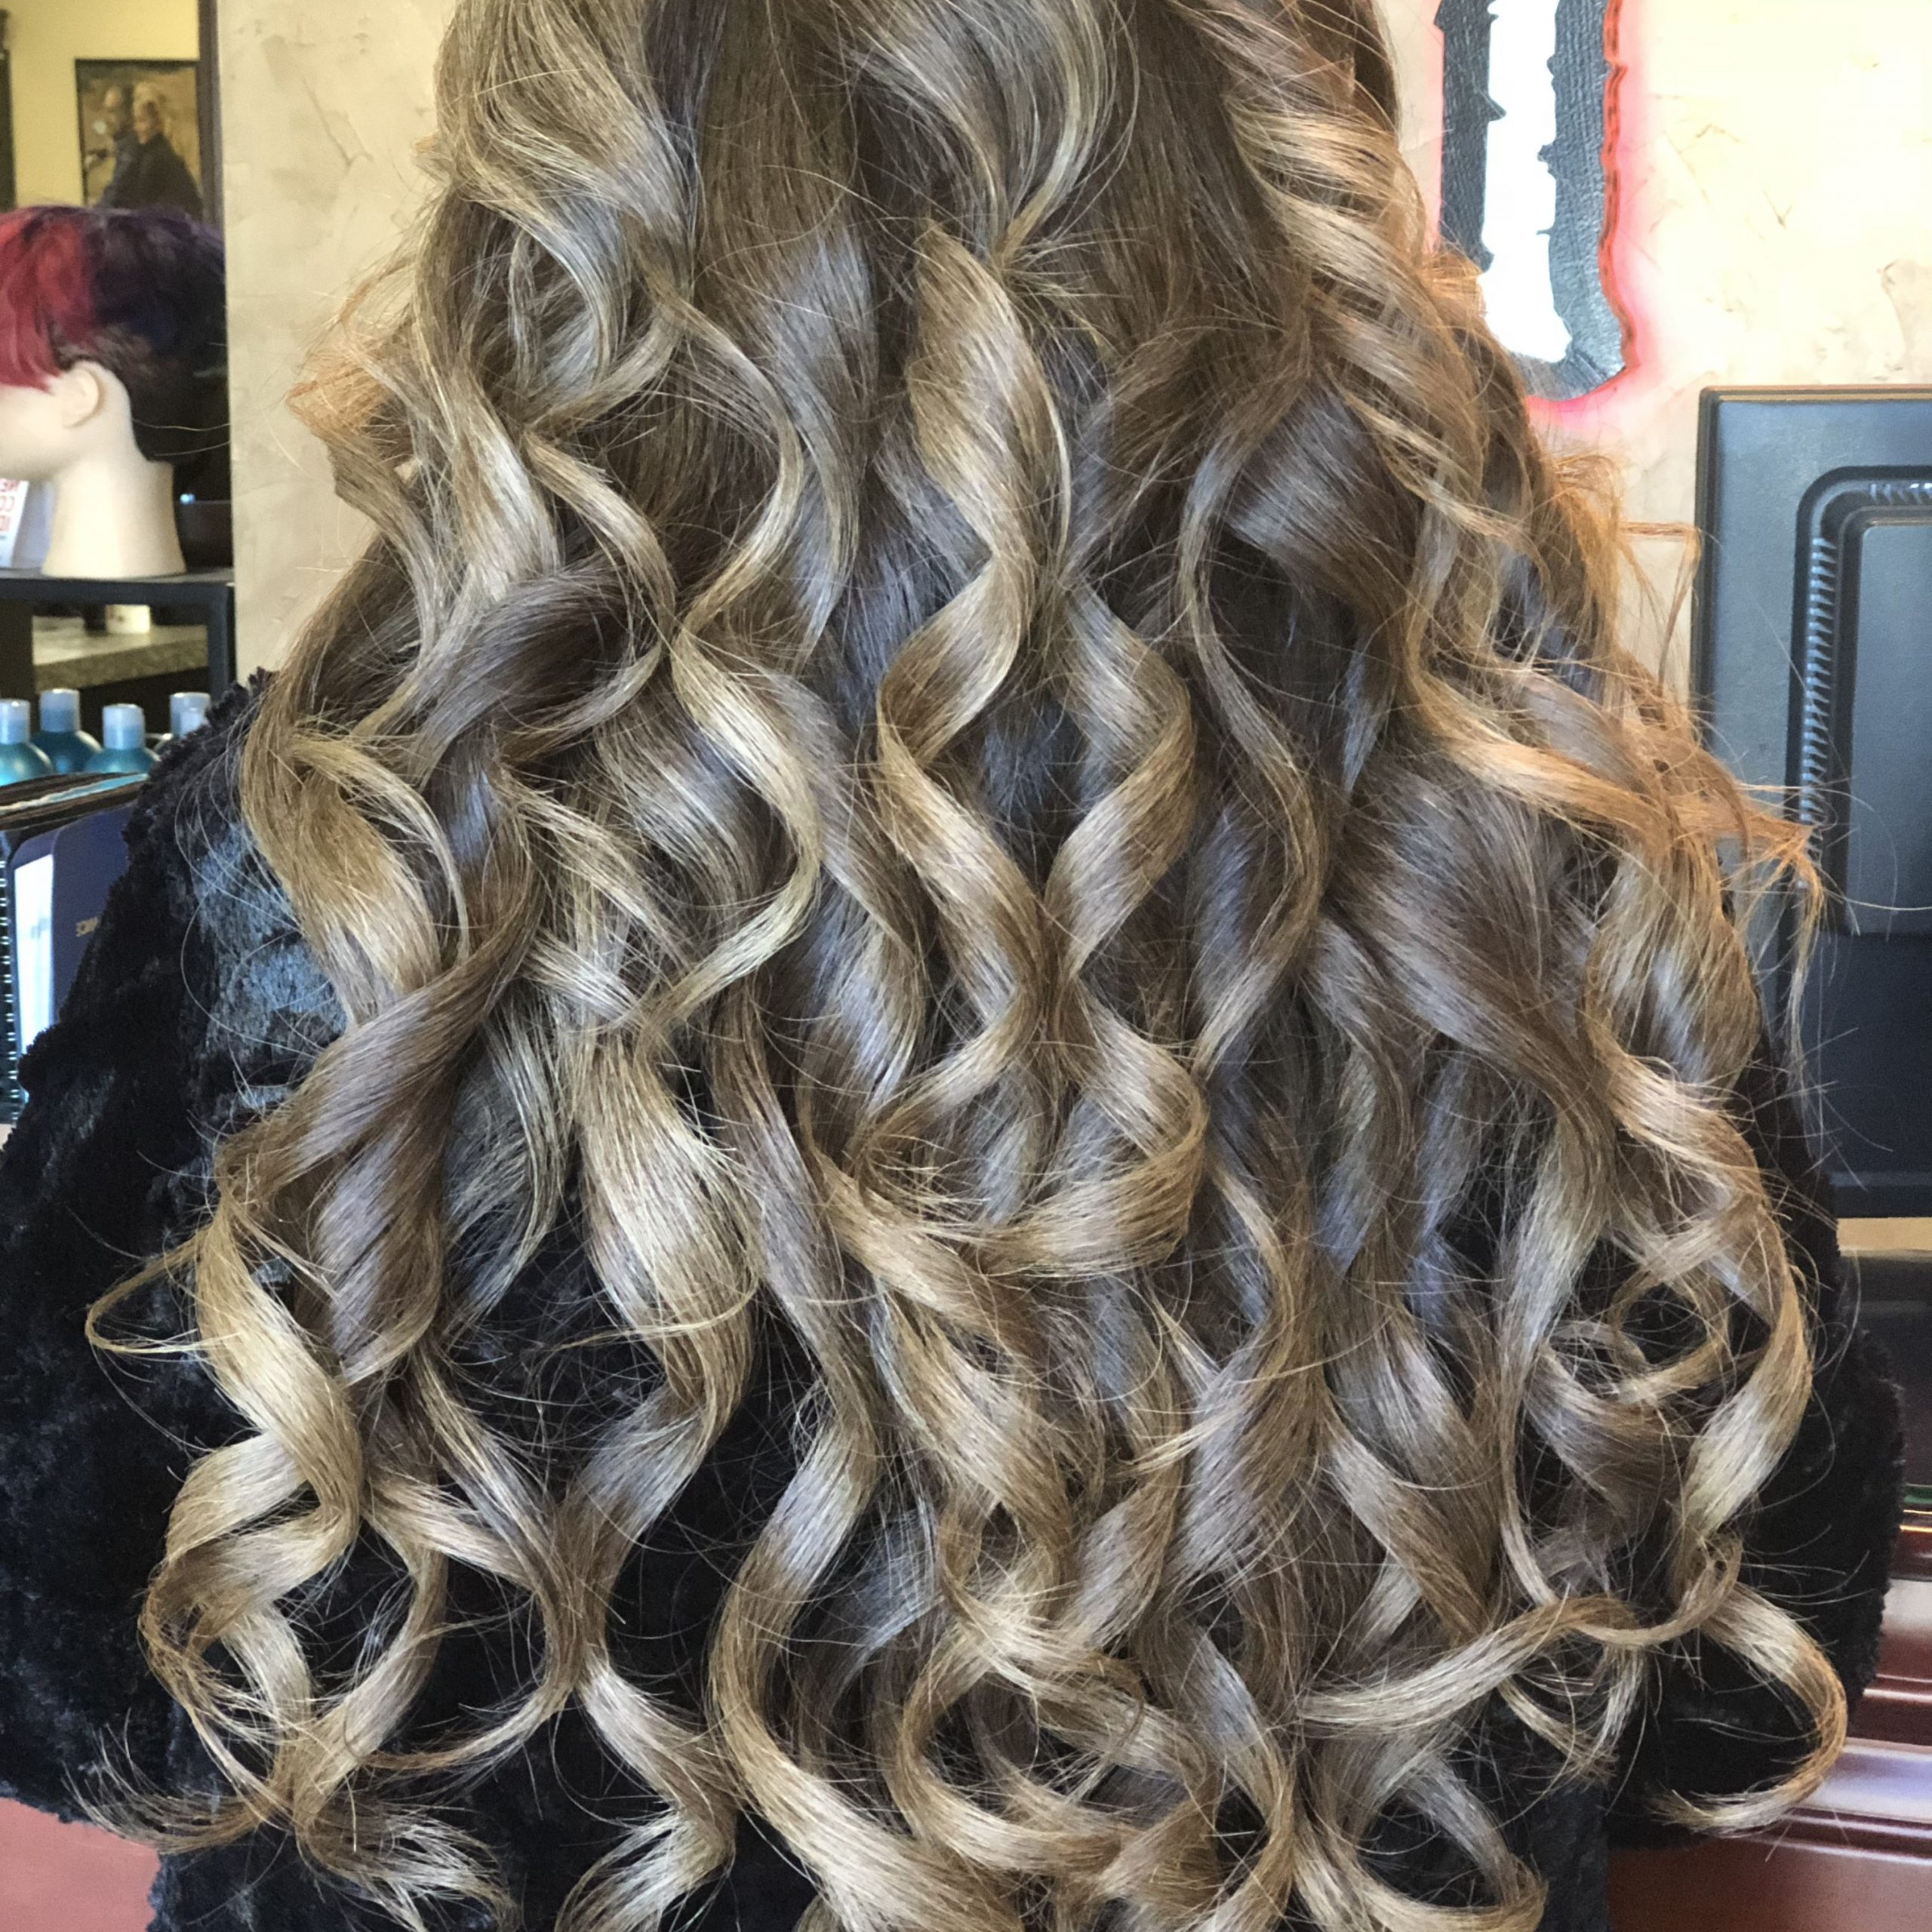 Pretty Hairstyles, Long Hair Intended For Famous Long Dark Brown Curls Hairstyles With Strawberry Blonde Accents (View 17 of 20)